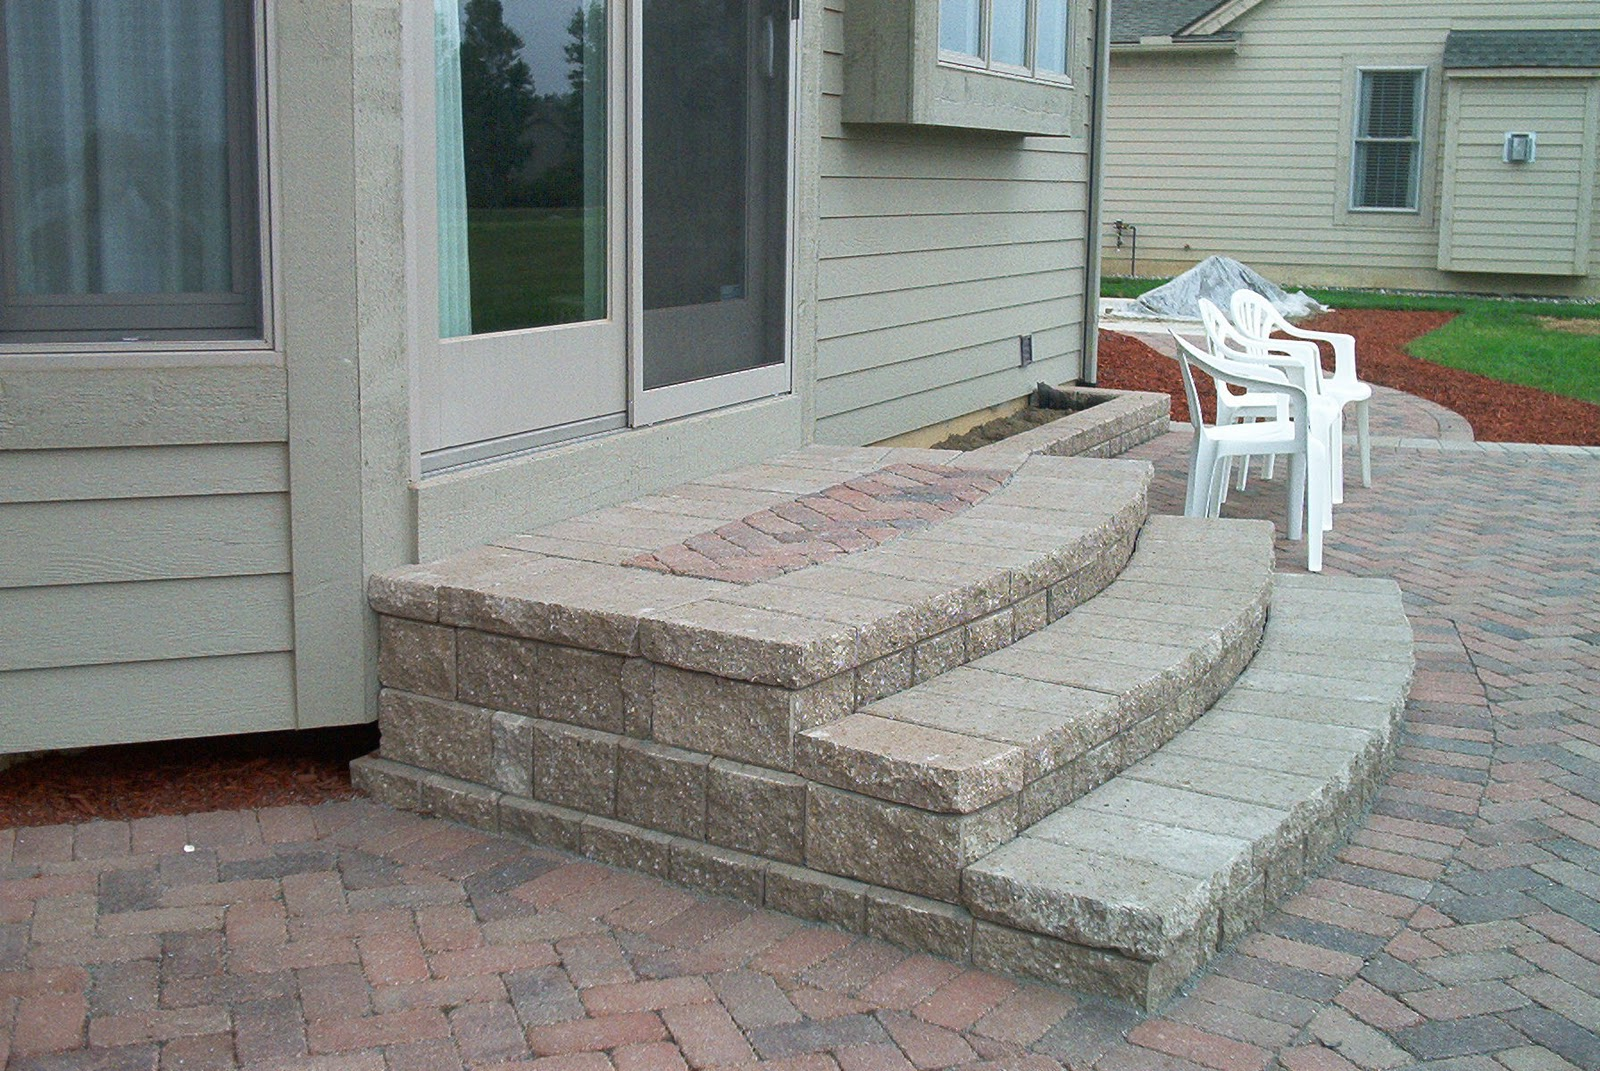 Brick Pavers,Canton,Ann Arbor,Plymouth,Patio,Patios,Repair ... on Brick Paver Patio Designs id=52467